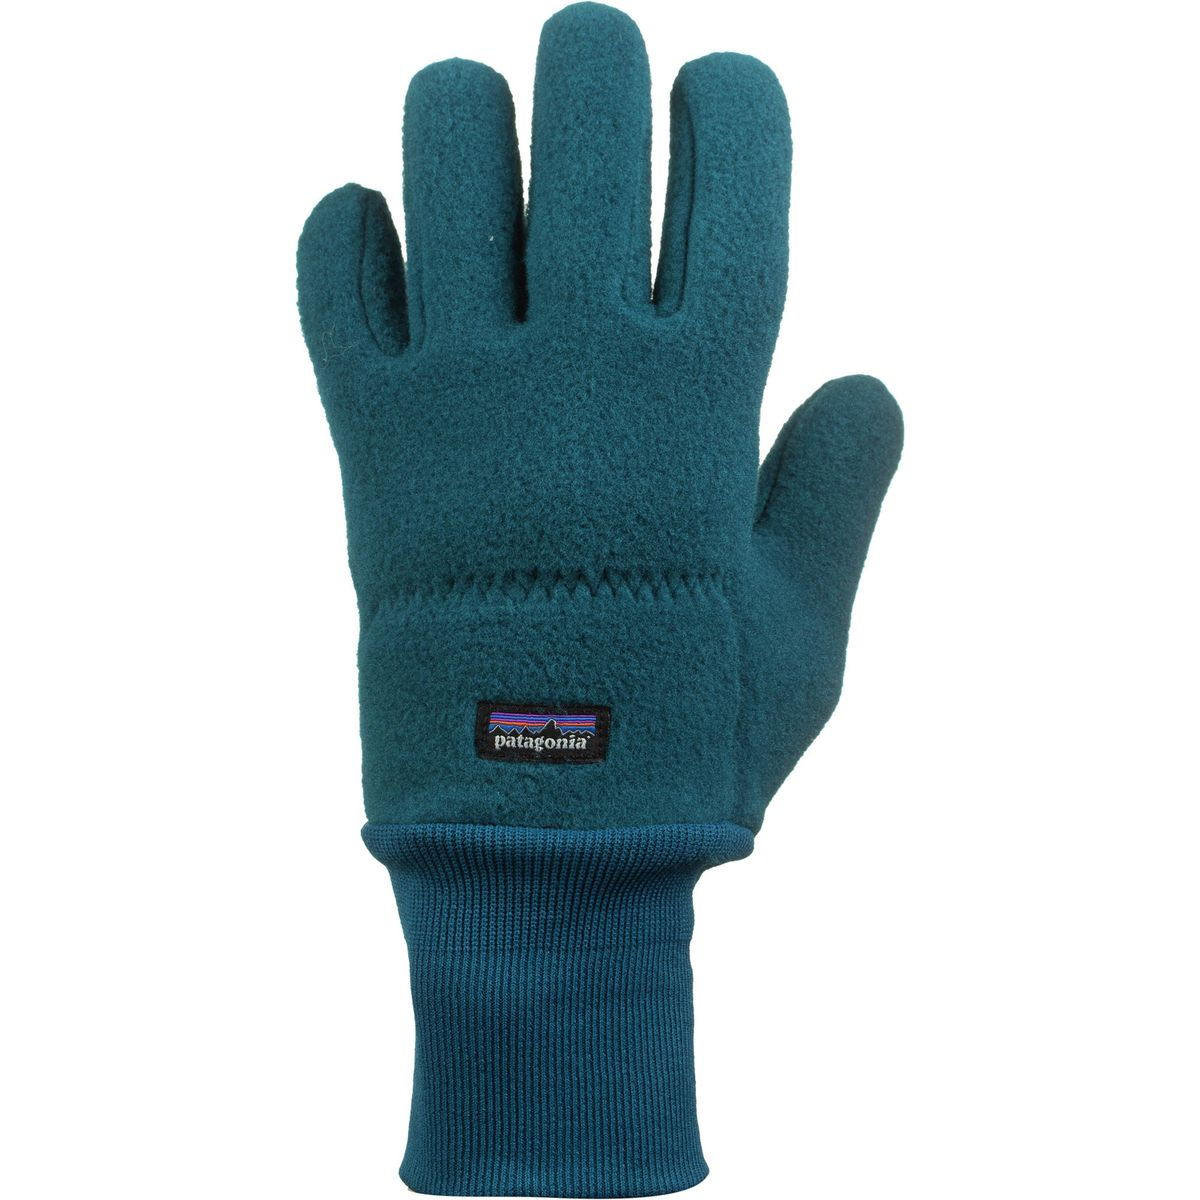 Patagonia Synchilla Glove - Kids